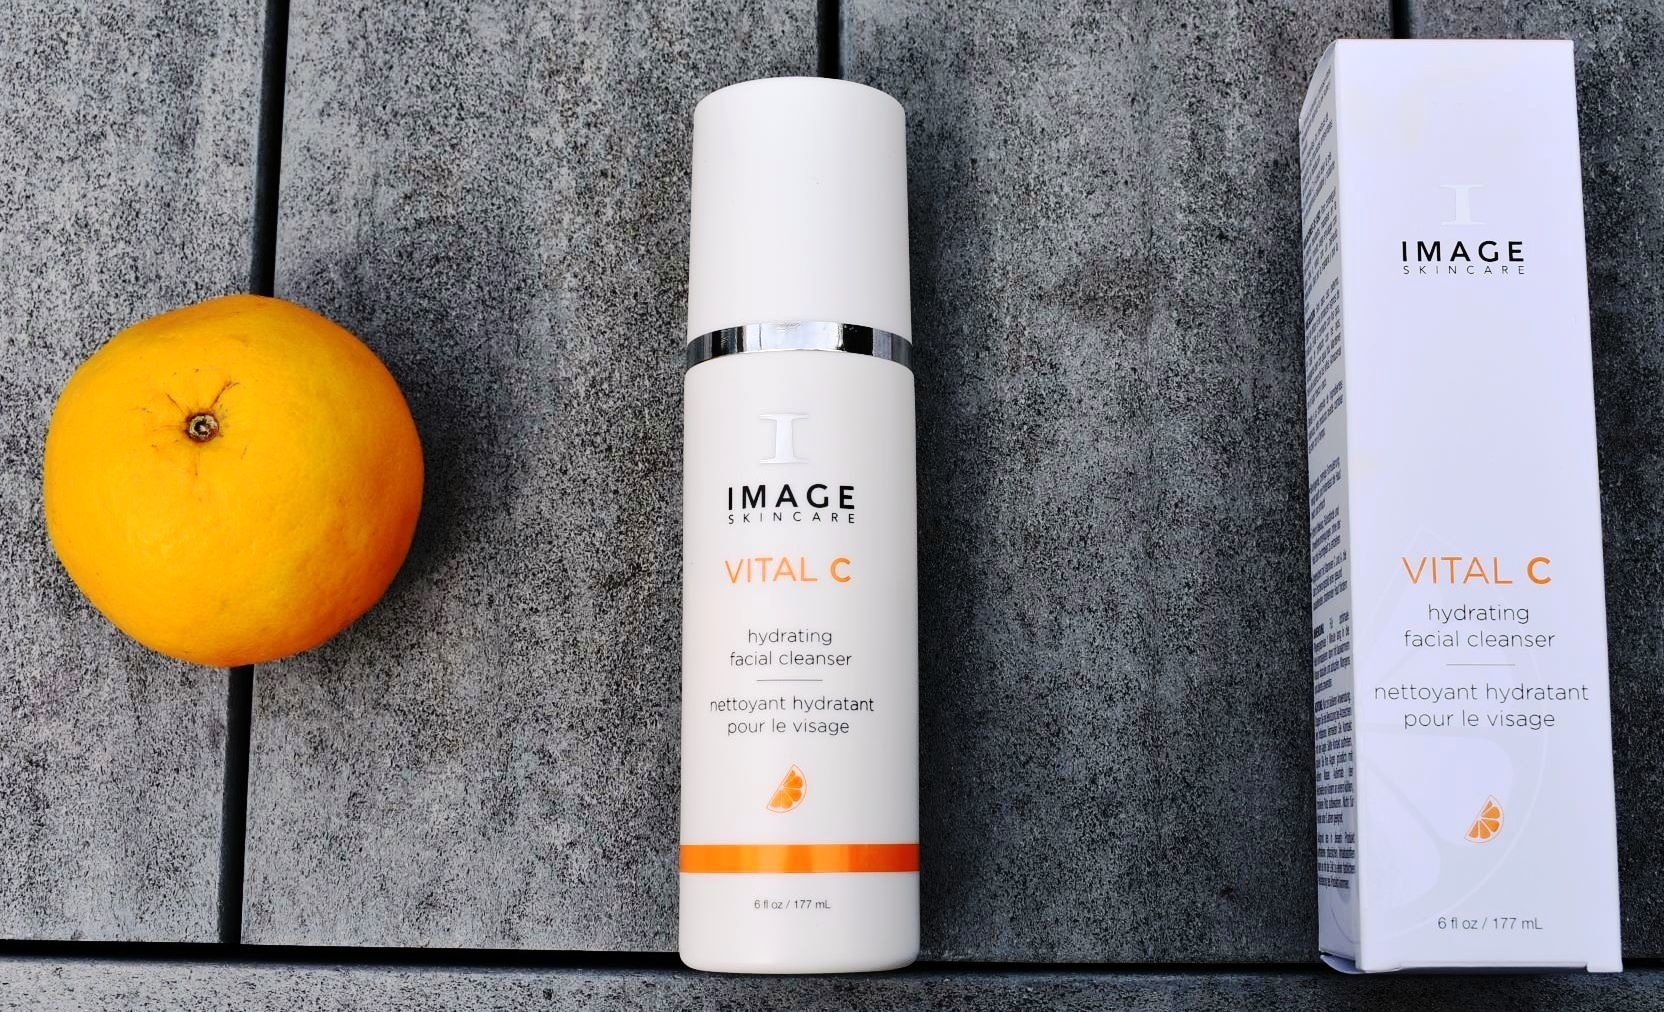 Review  Image Skincare Vital C Hydrating Facial Cleanser